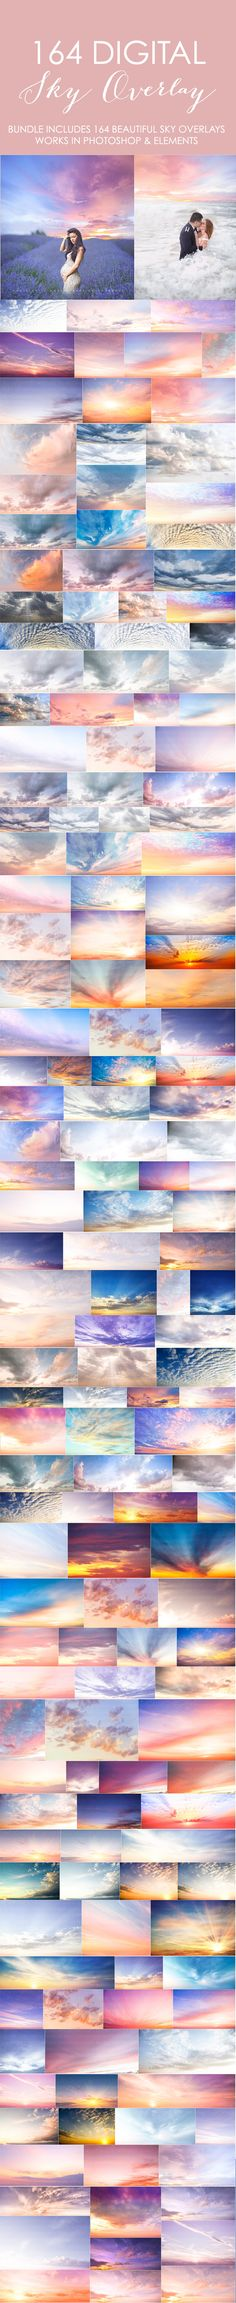 These are STUNNING!!! Bundle includes 164 beautiful sky overlays. Just choose your sky, copy and paste it over your own image and then erase what you don't need. Transform your images into something magical with these sky overlays.